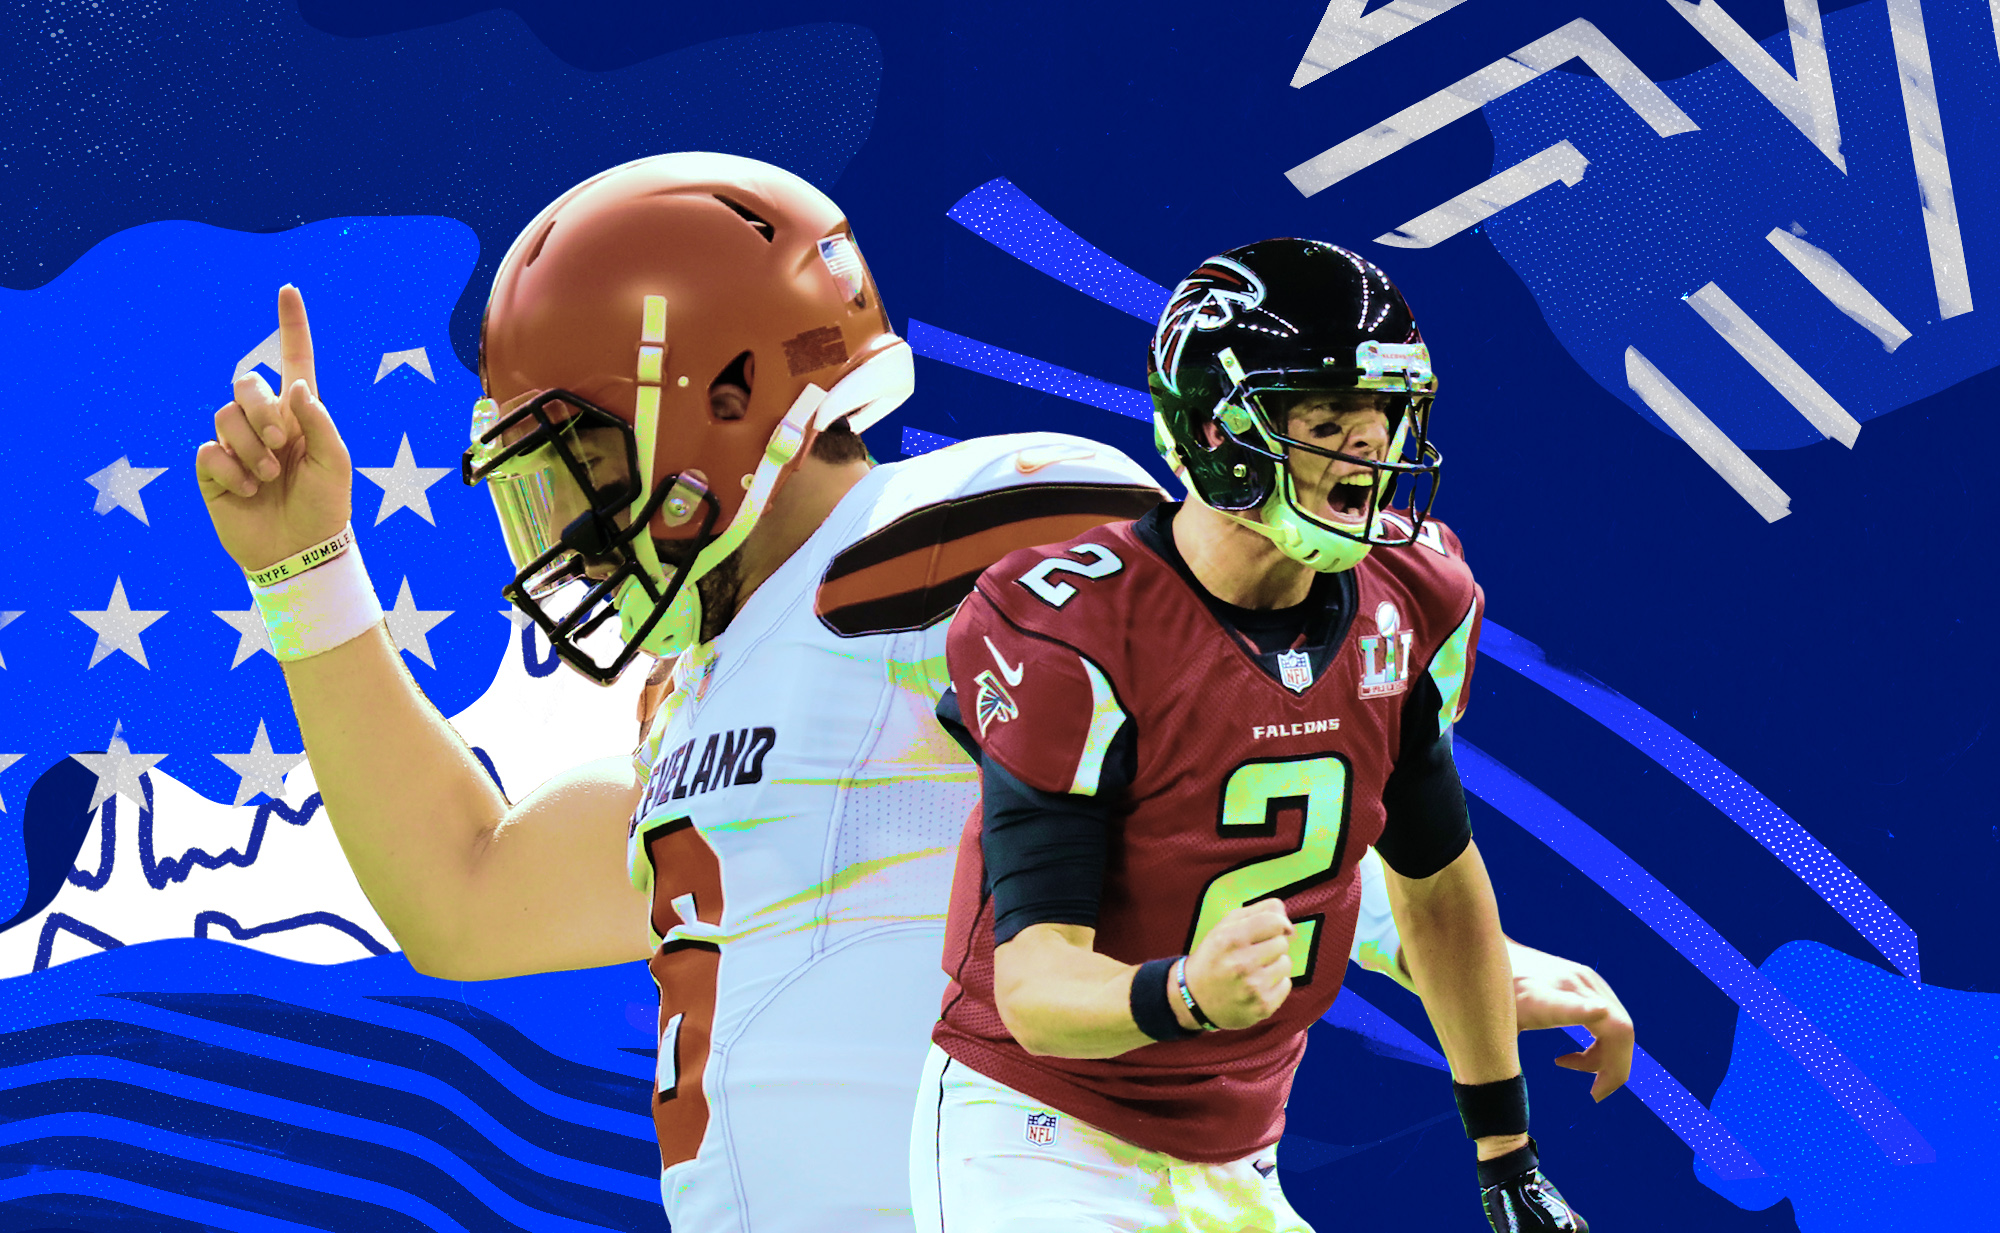 Who will be the next quarterback to win his first Super Bowl?